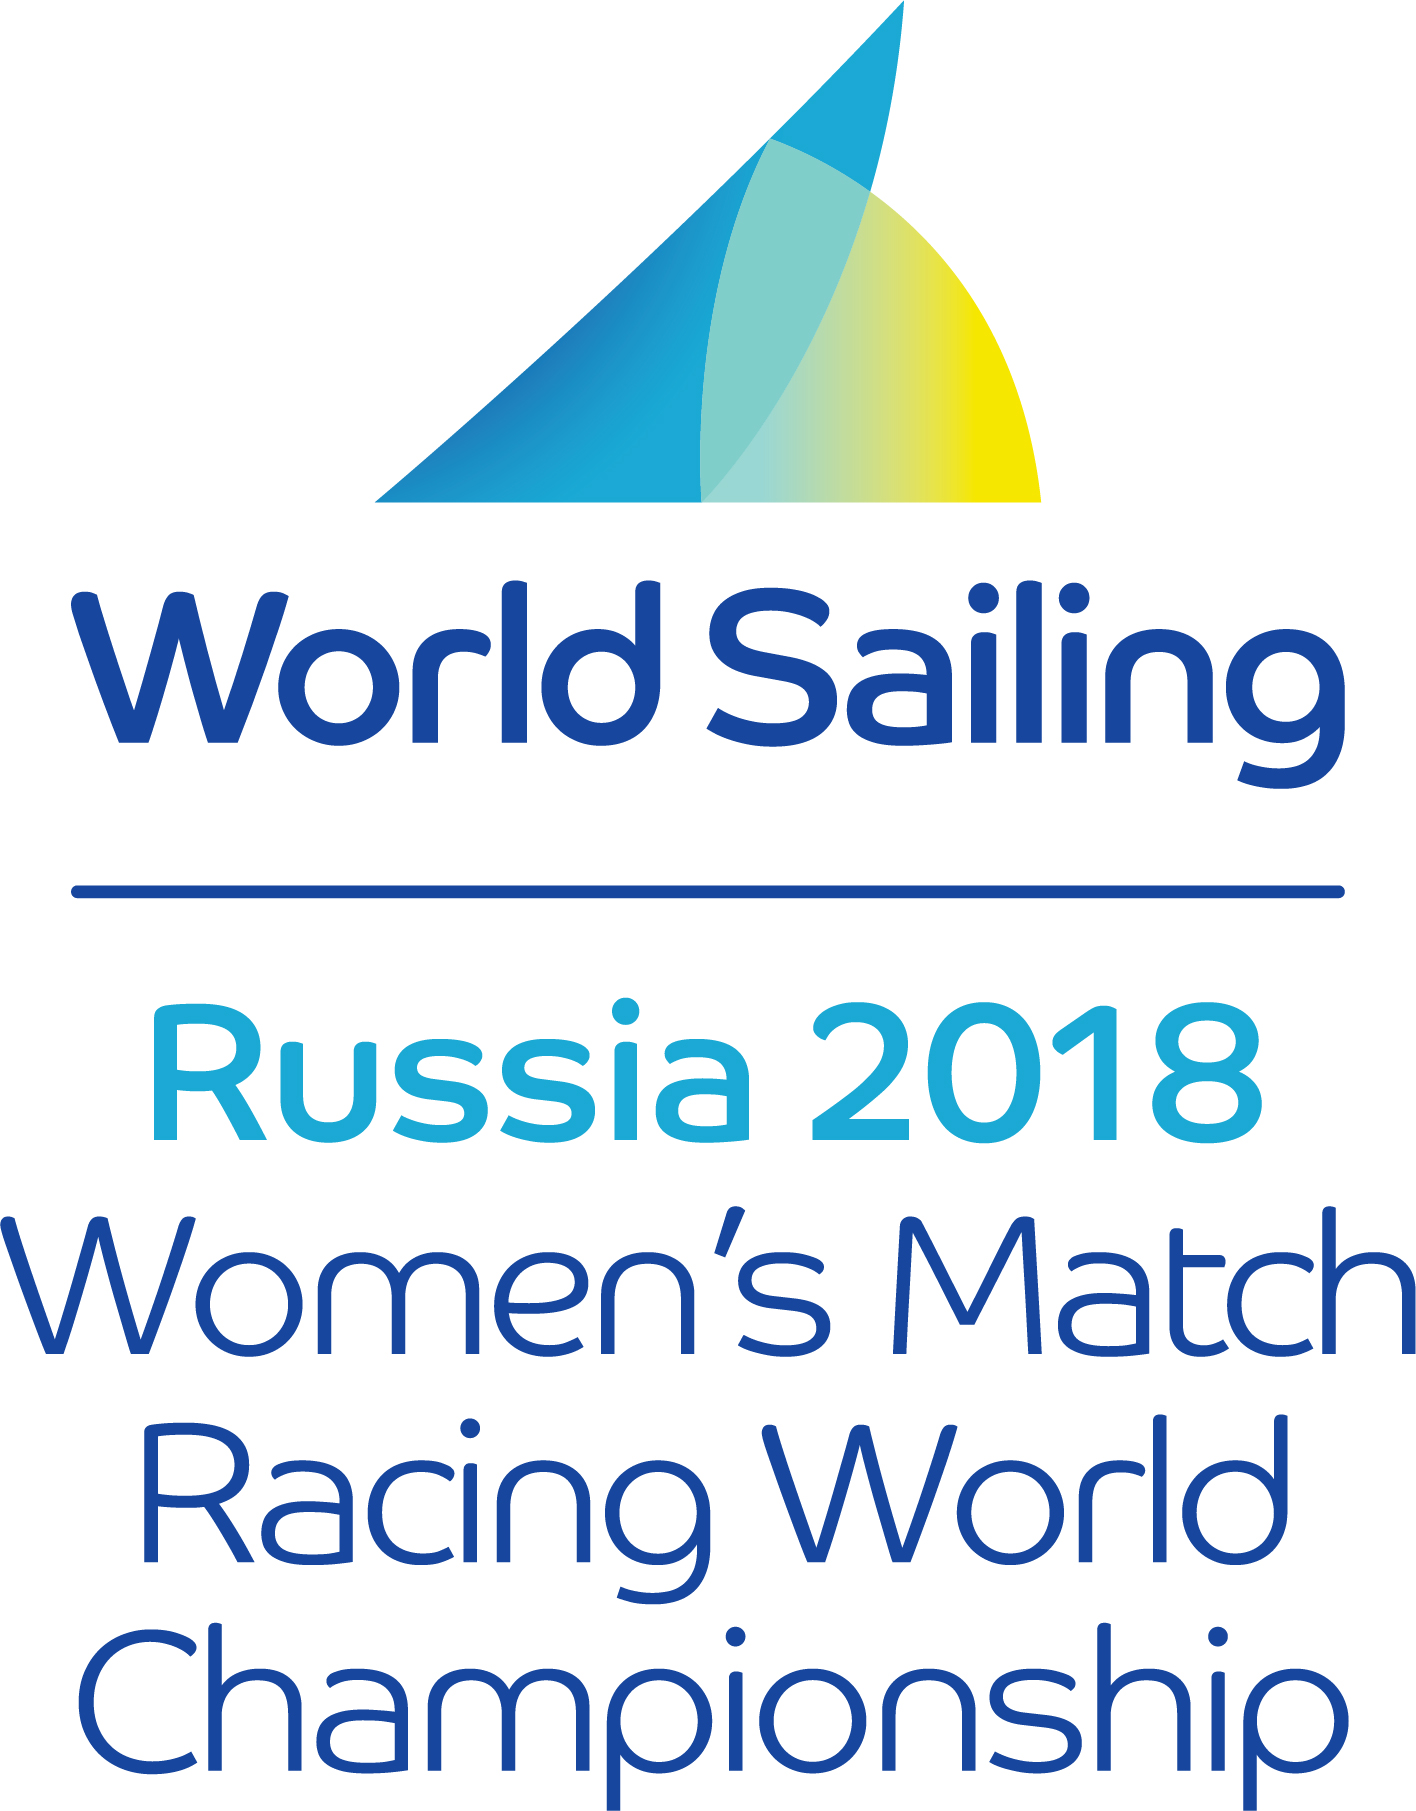 2018 Women's Match Racing World Championship logo